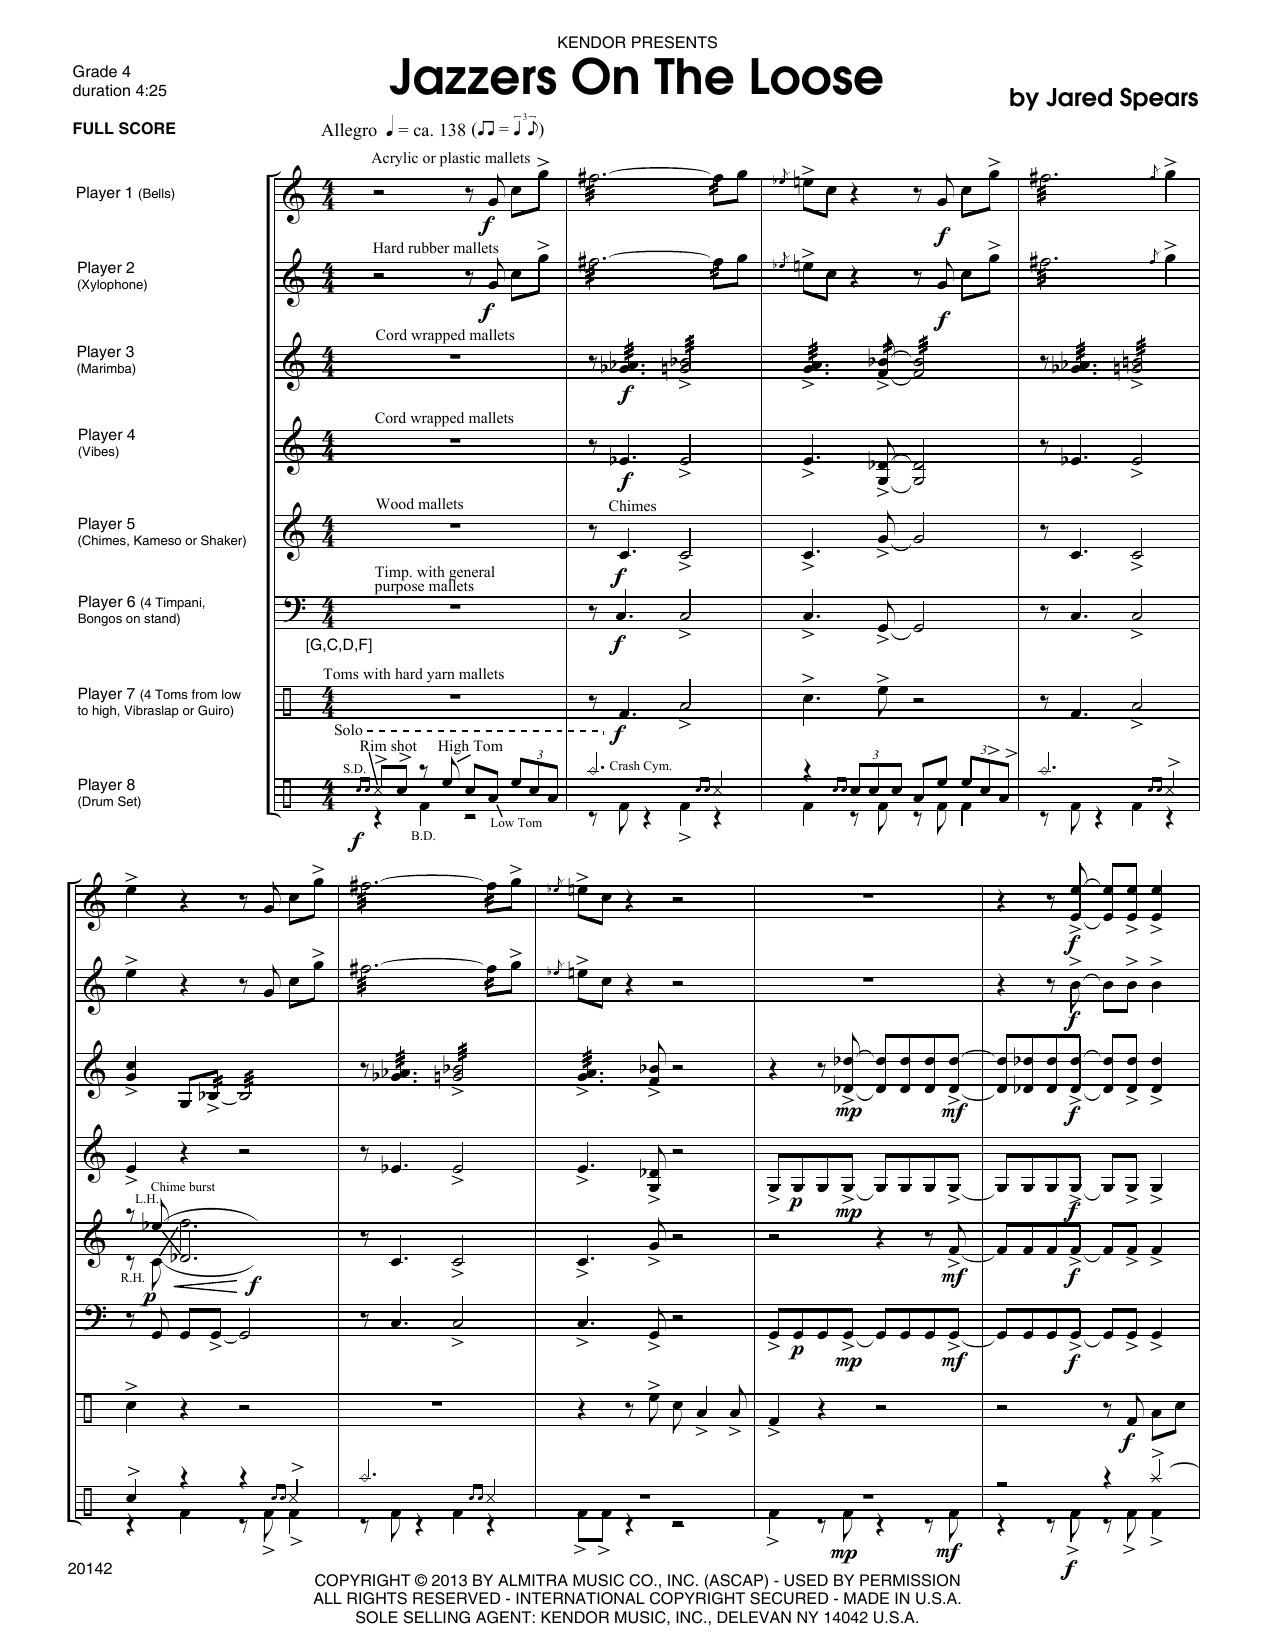 Jazzers On The Loose (COMPLETE) sheet music for percussions by Jared Spears